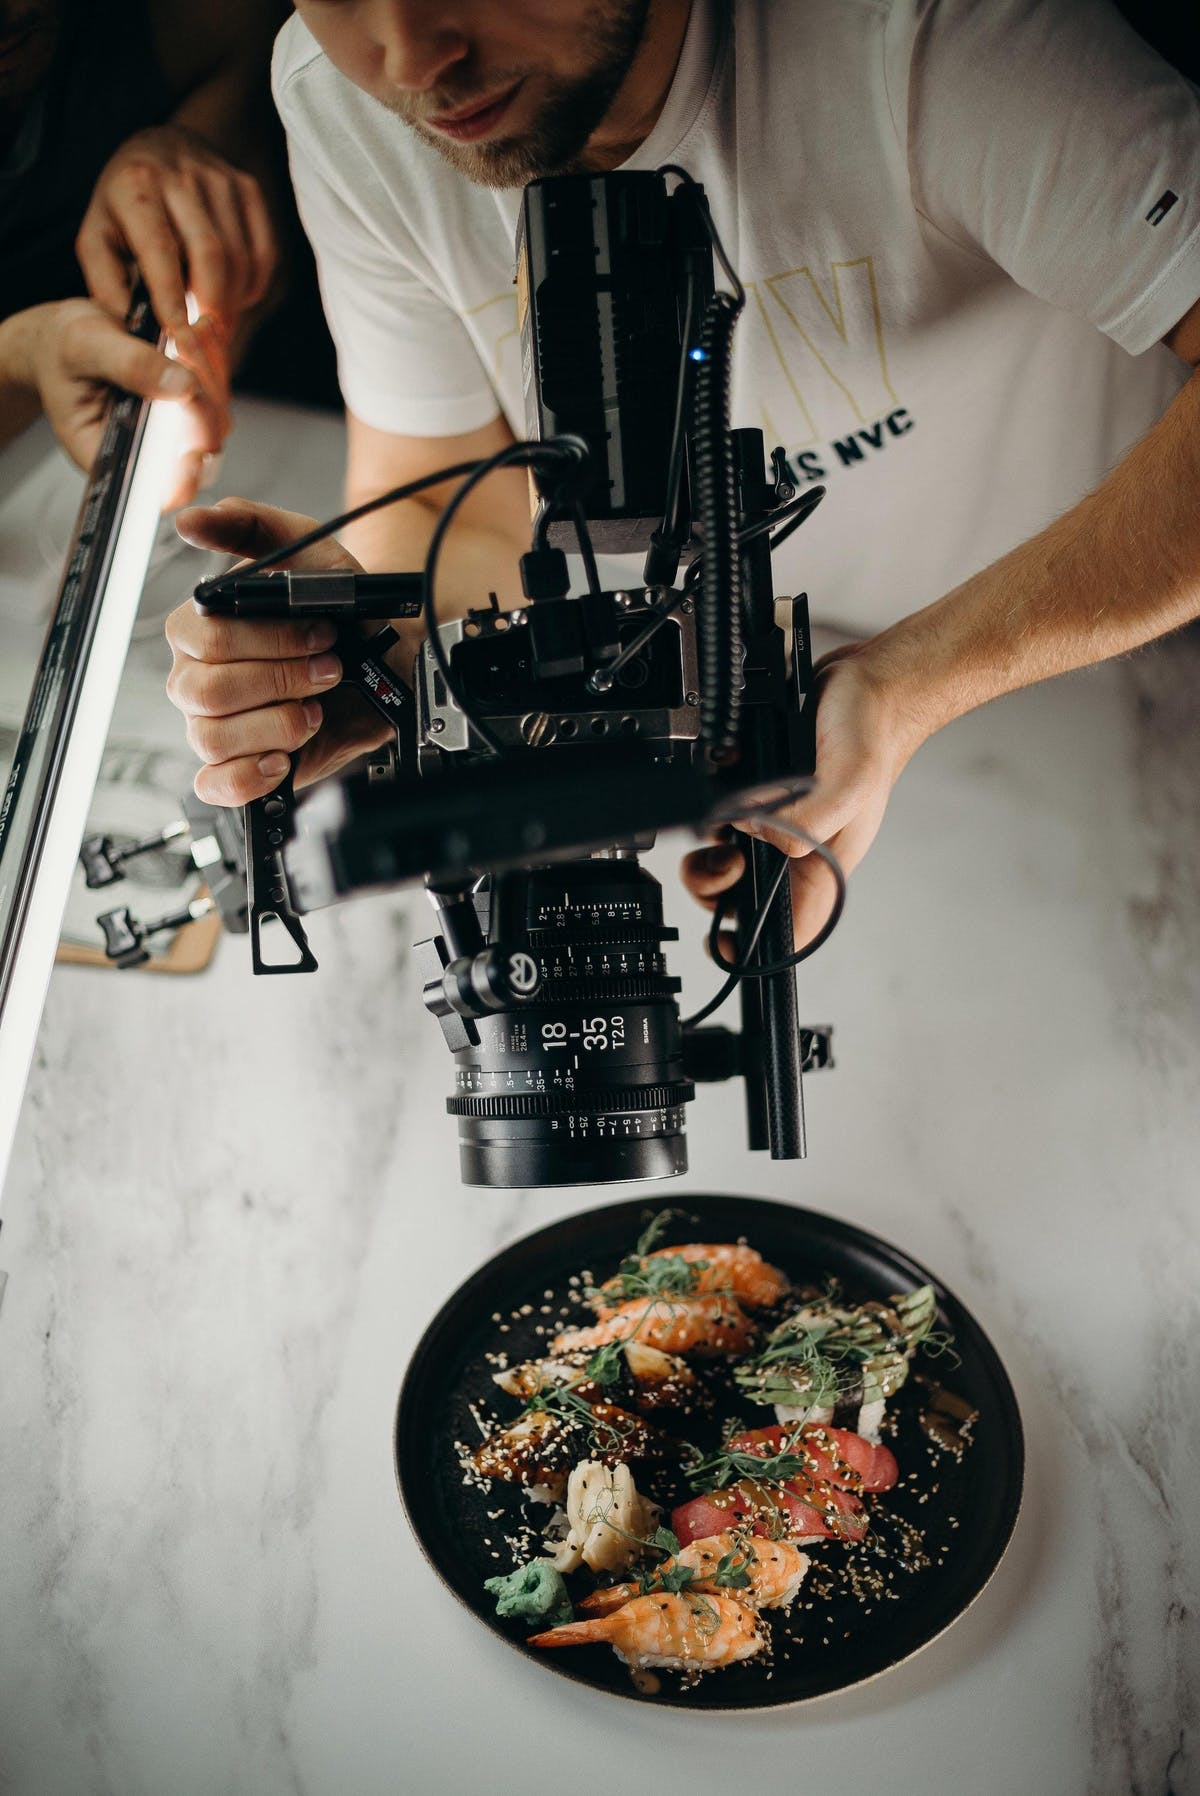 Man using video camera pointing on food on plate 3298603